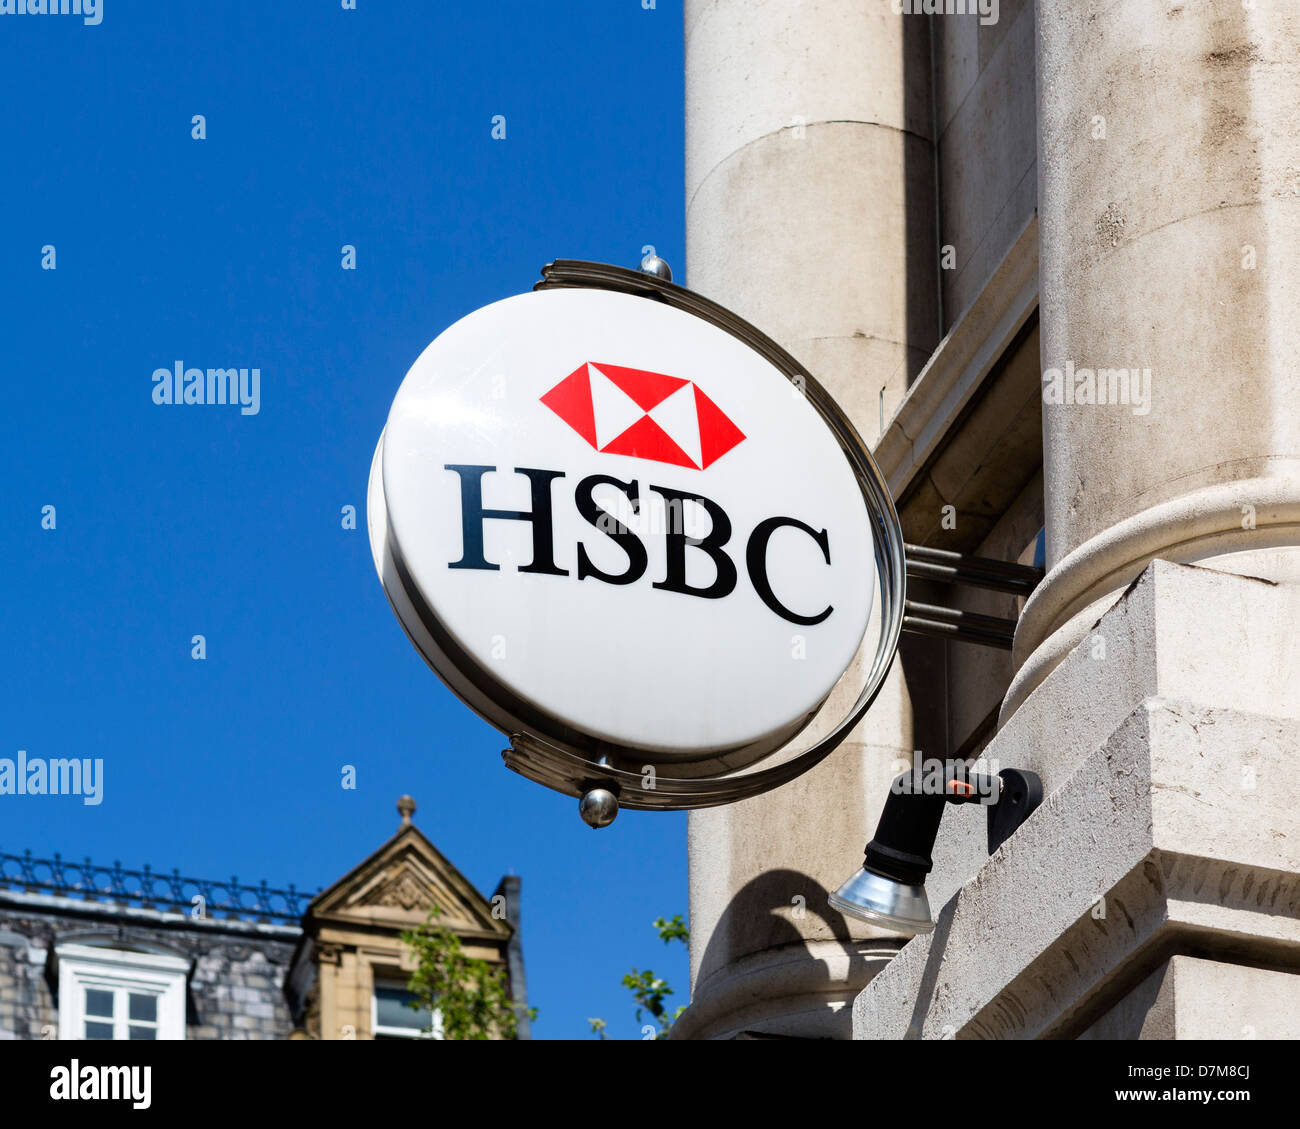 HSBC Bank in Doncaster, South Yorkshire, England, UK - Stock Image